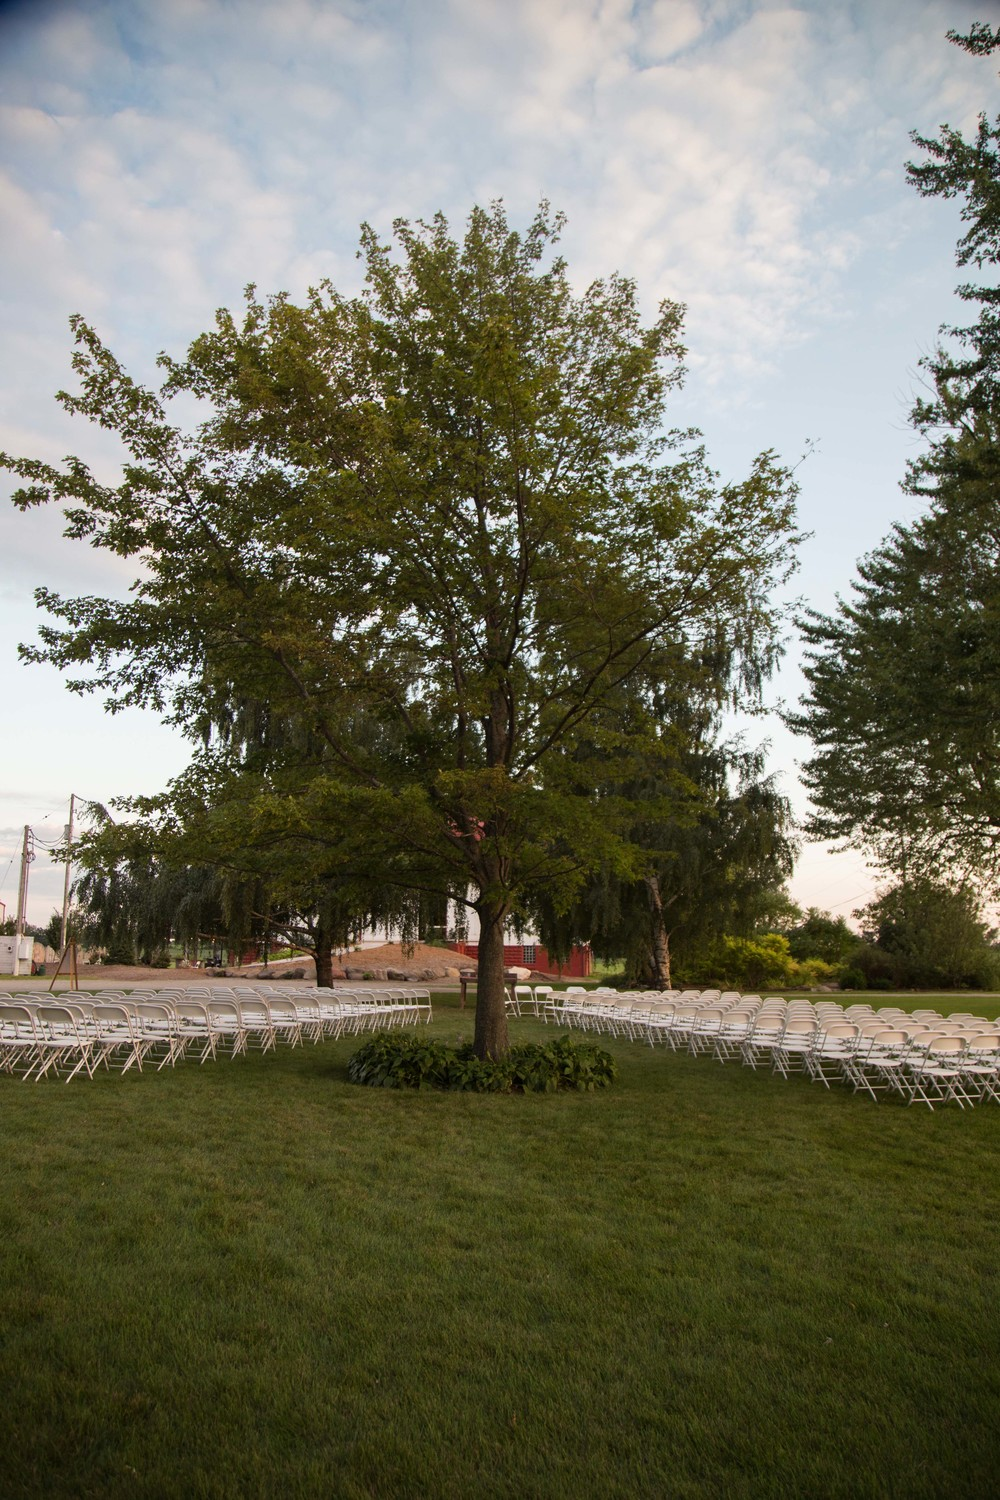 8_21-Birches_Ceremony_Setup_white_chairs_5873 2.jpg